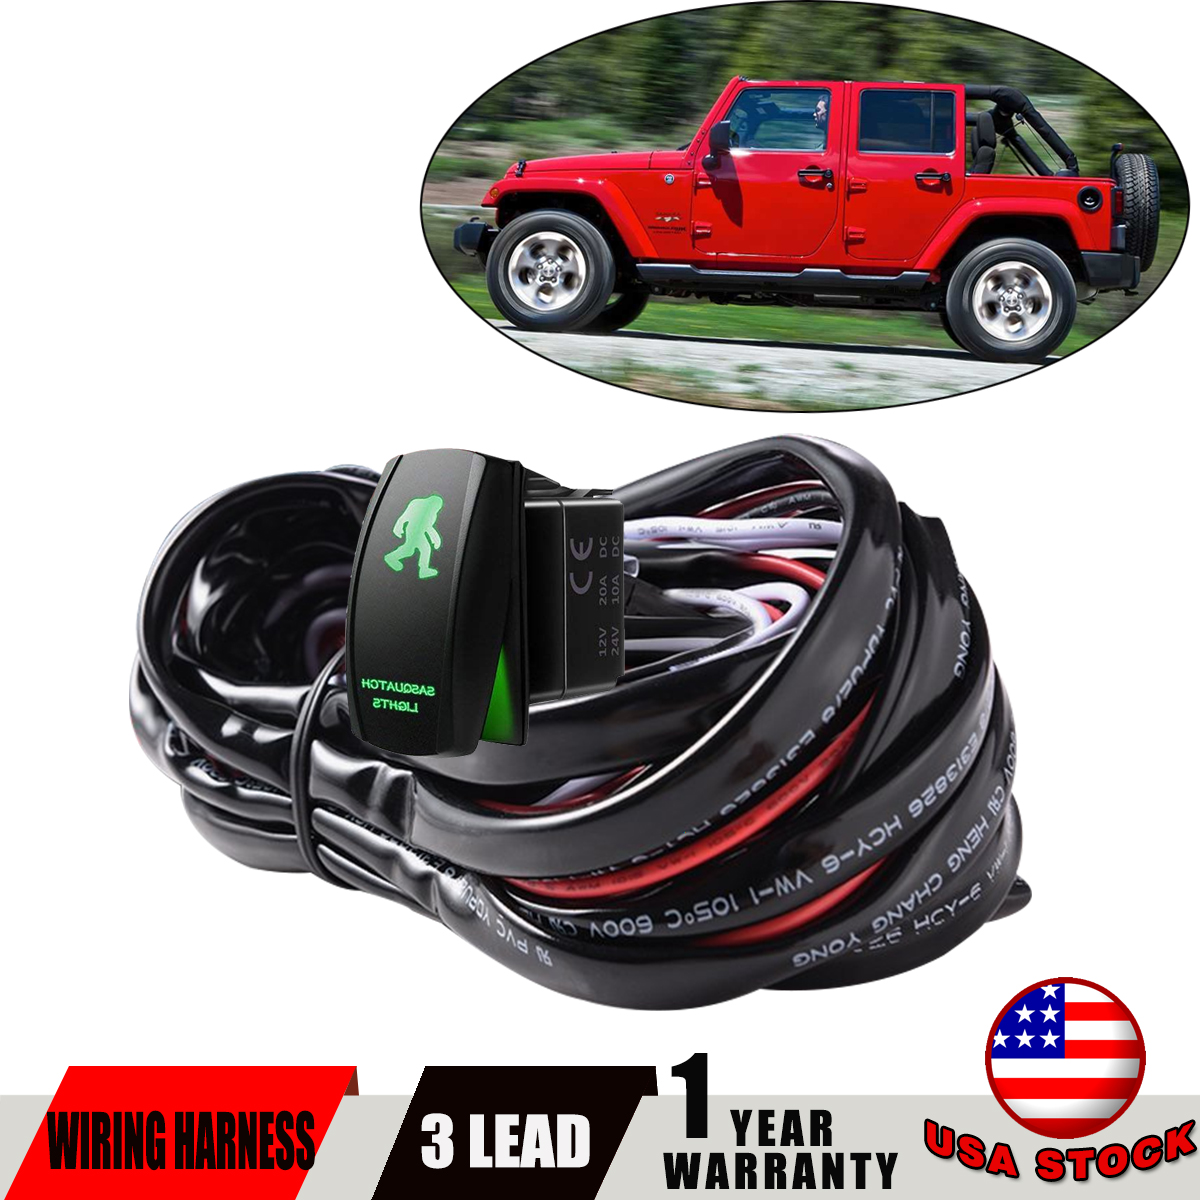 3 Lead Led Light Bar Wiring Harness Kit Fuse 12v 40a Relay On Off Car Blue Red Rocker Switch With